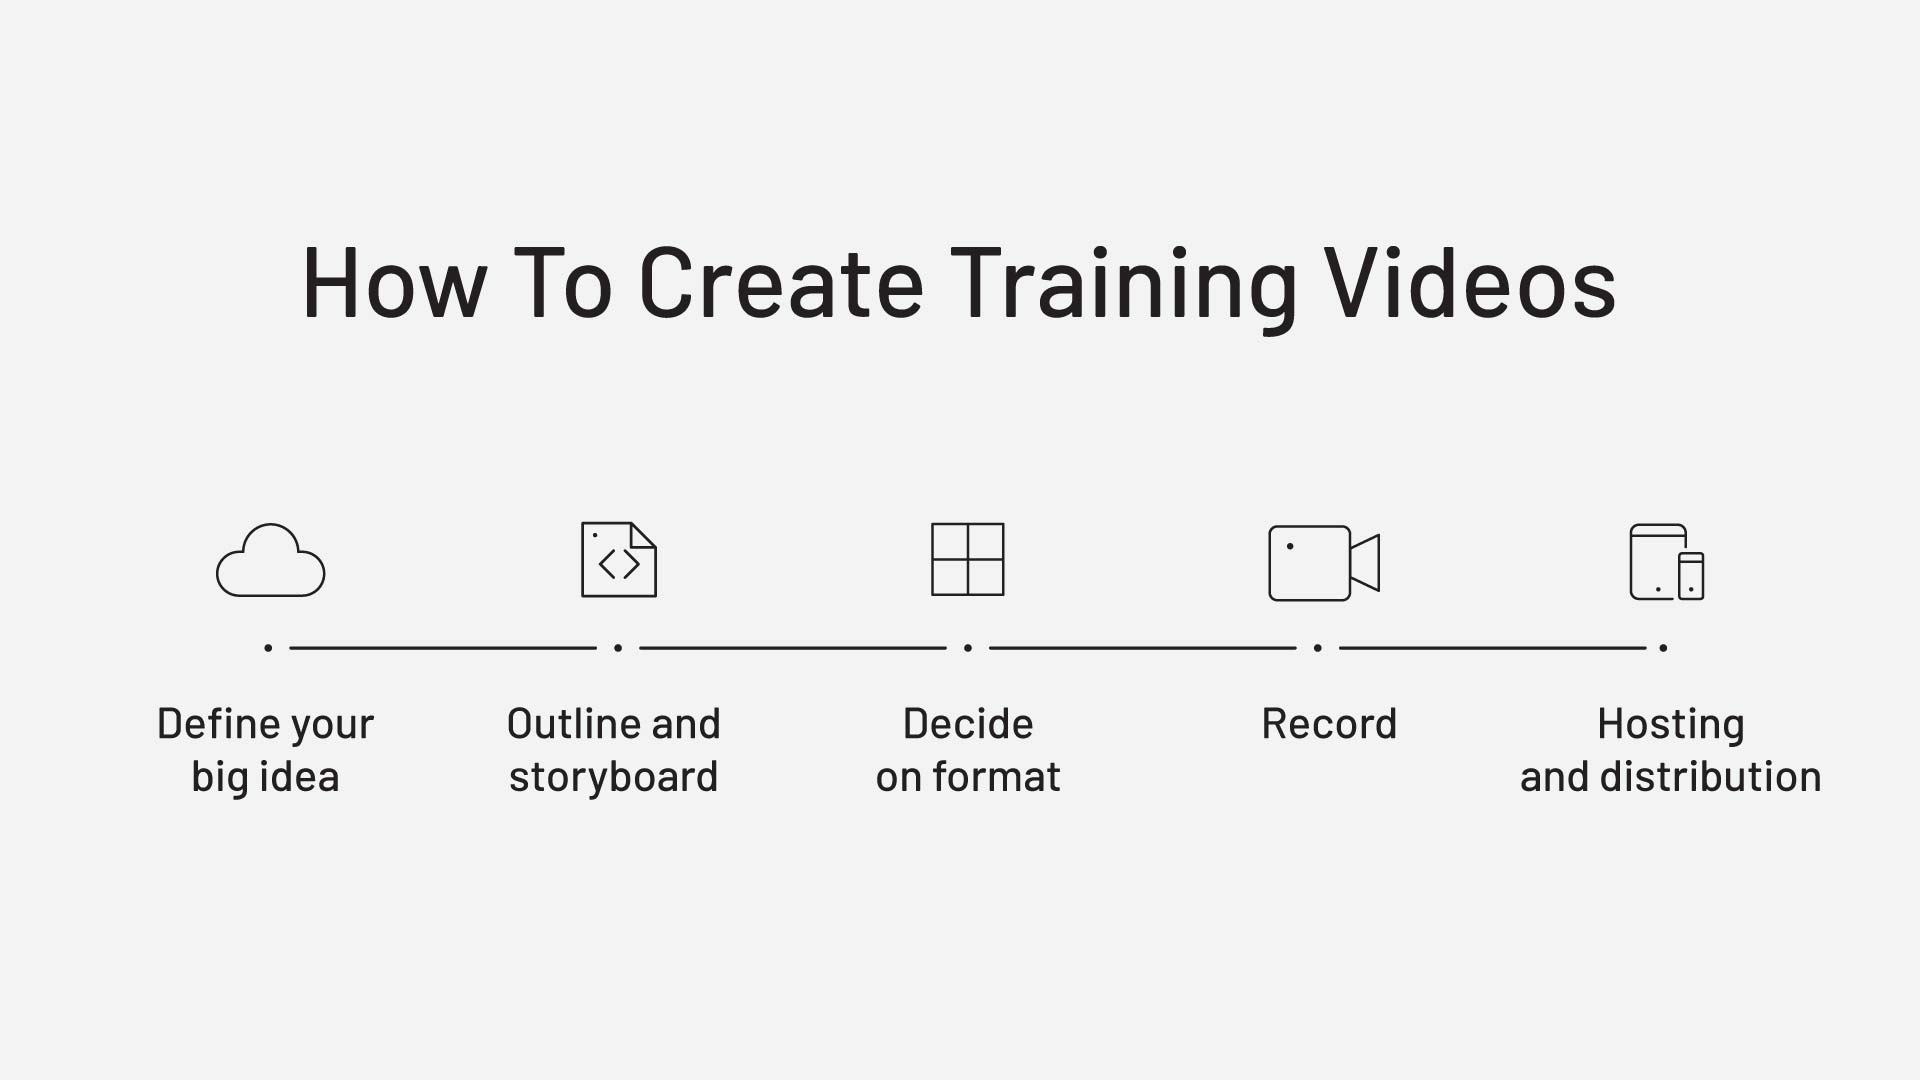 How to create training videos